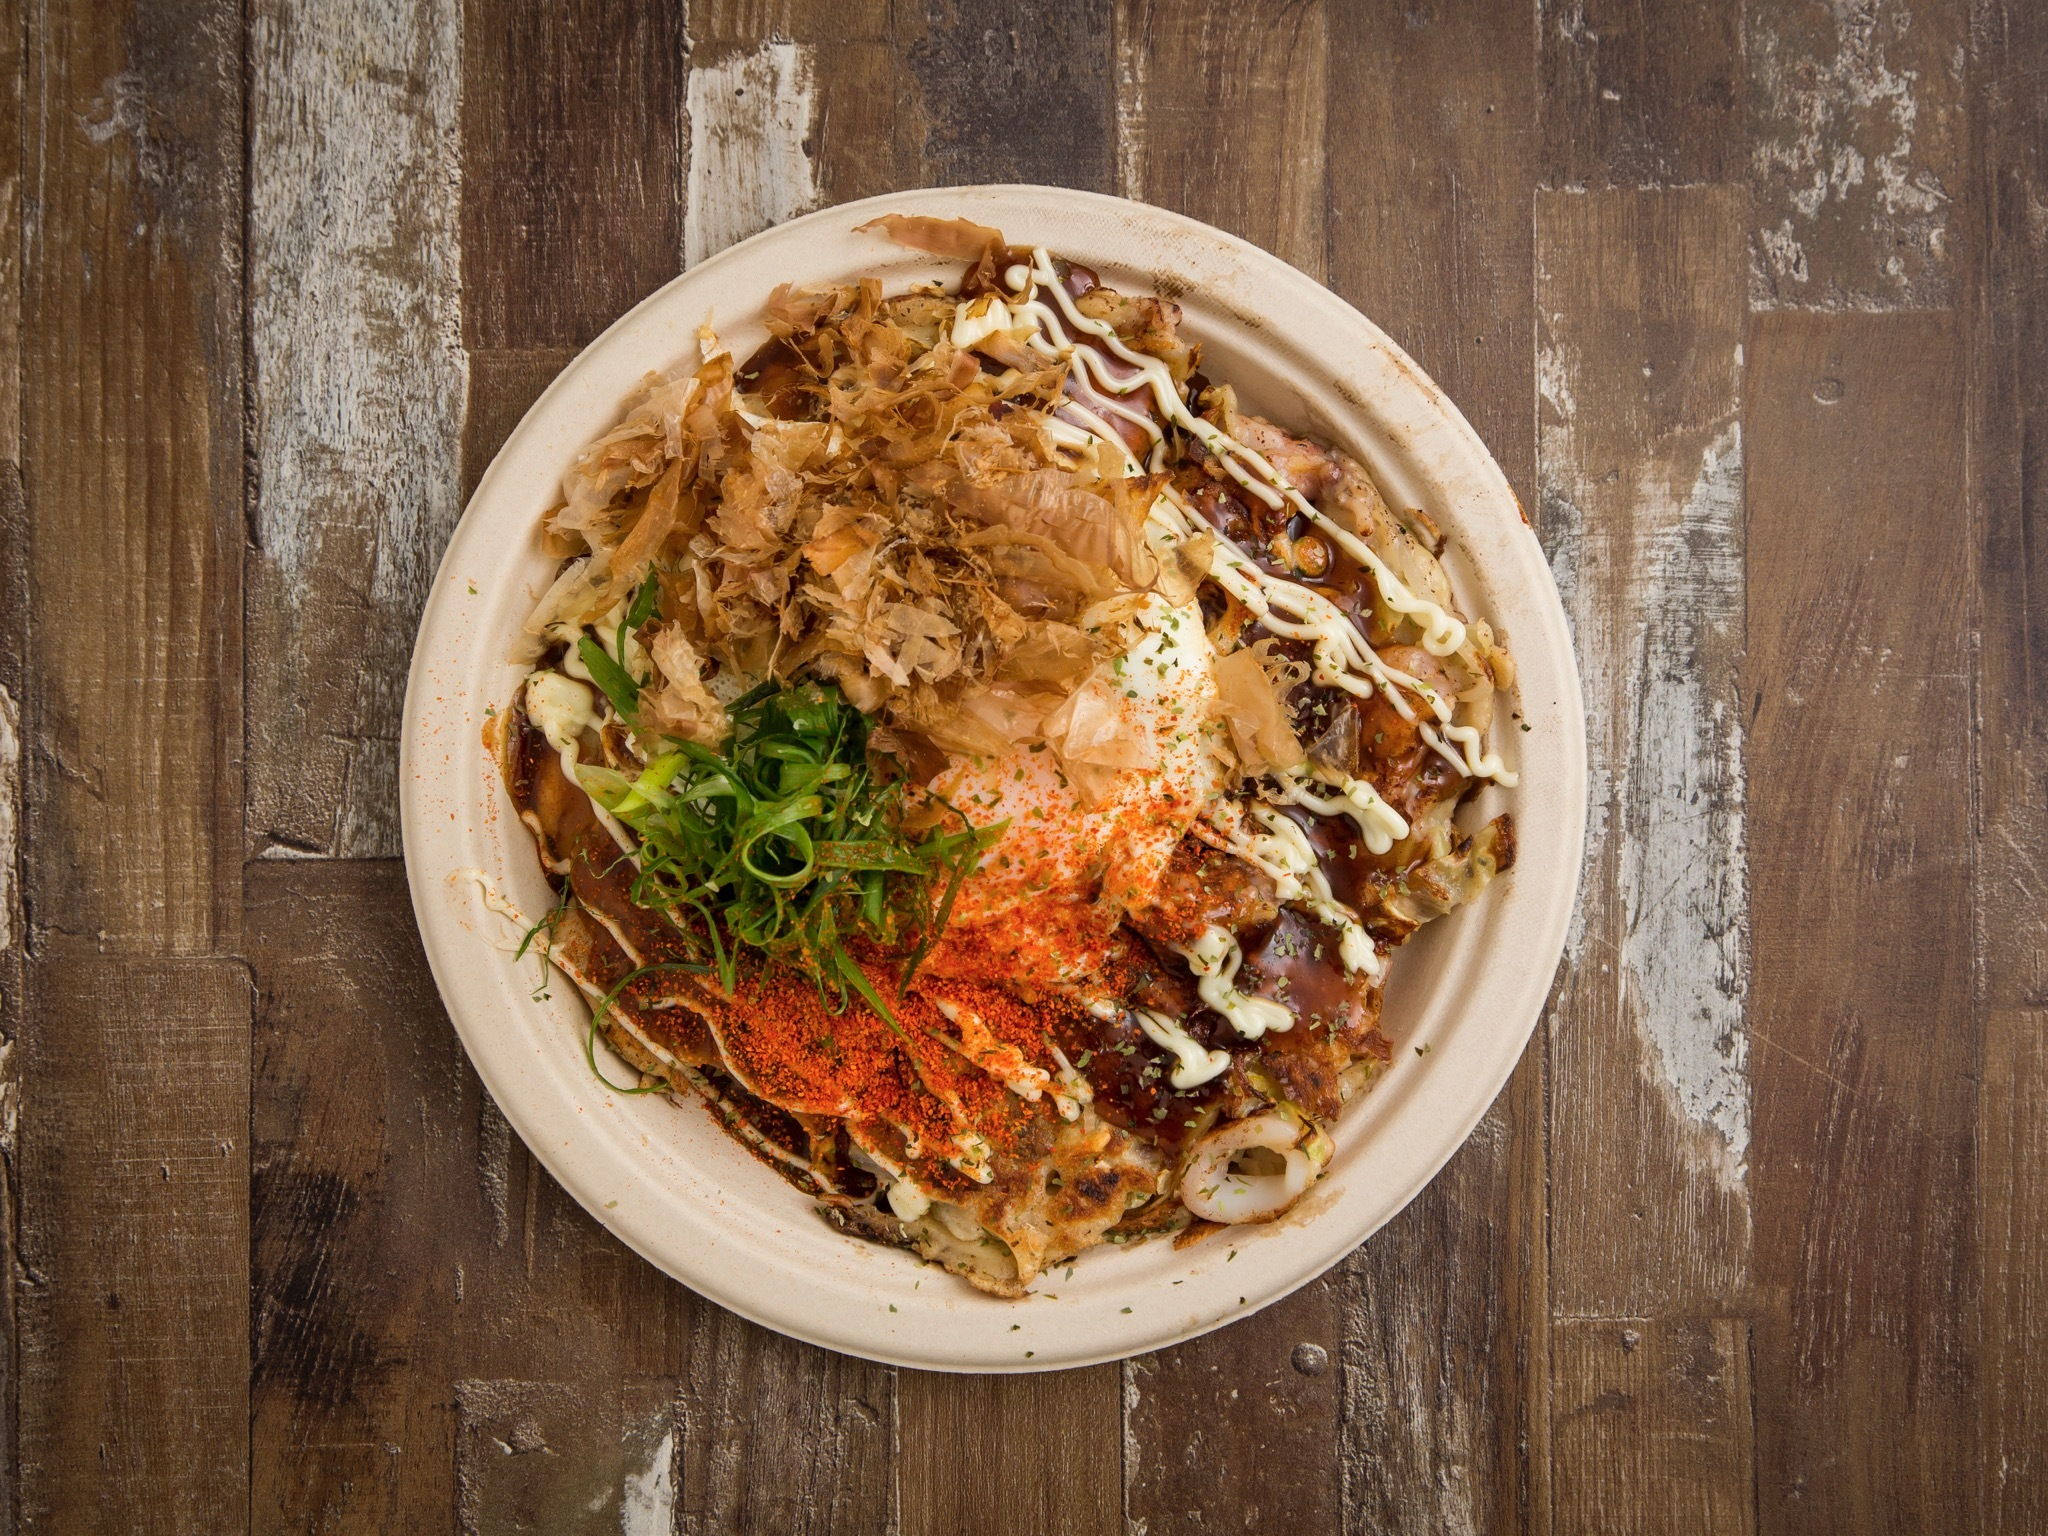 Seafood okonomiyaki at Kyo-to at Spice Alley